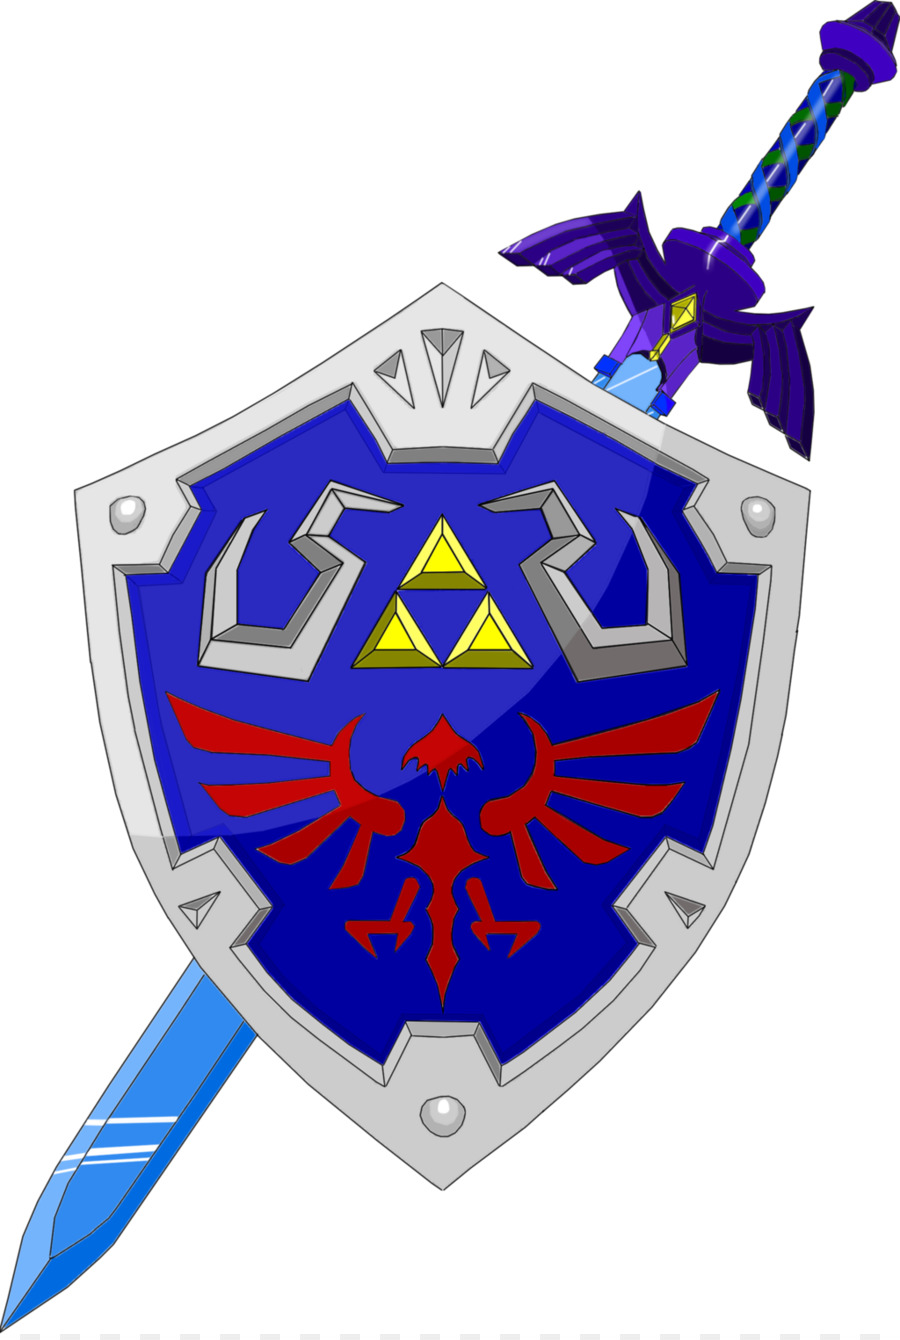 Legend Of Zelda Skyward Sword Symbol.